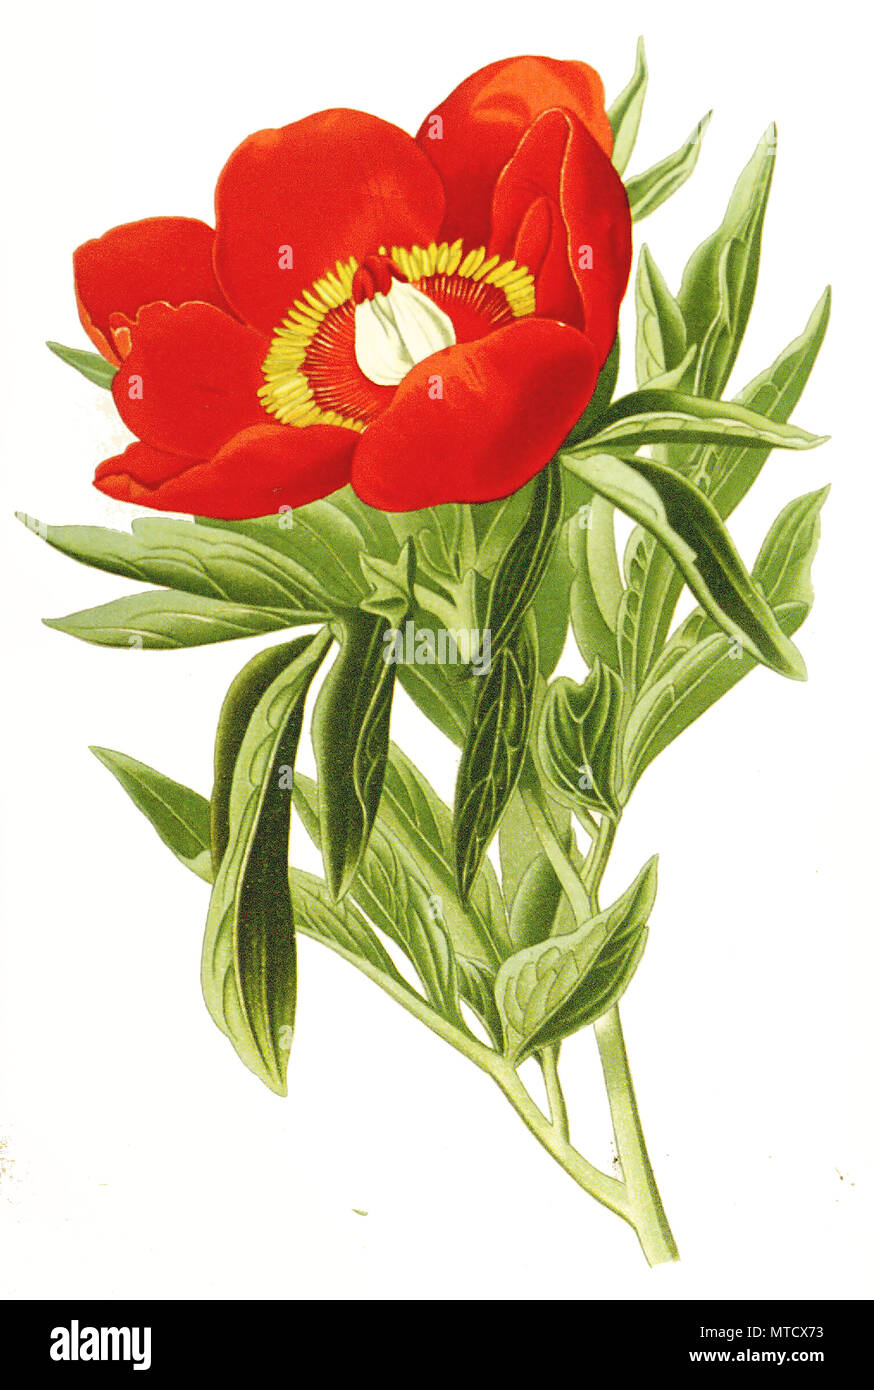 Paeonia officinalis, Common Peony, garden peony. Gemeine Pfingstrose, auch Echte Pfingstrose, Bauern-Pfingstrose, Garten-Pfingstrose, digital improved reproduction from a print of the 19th century Stock Photo